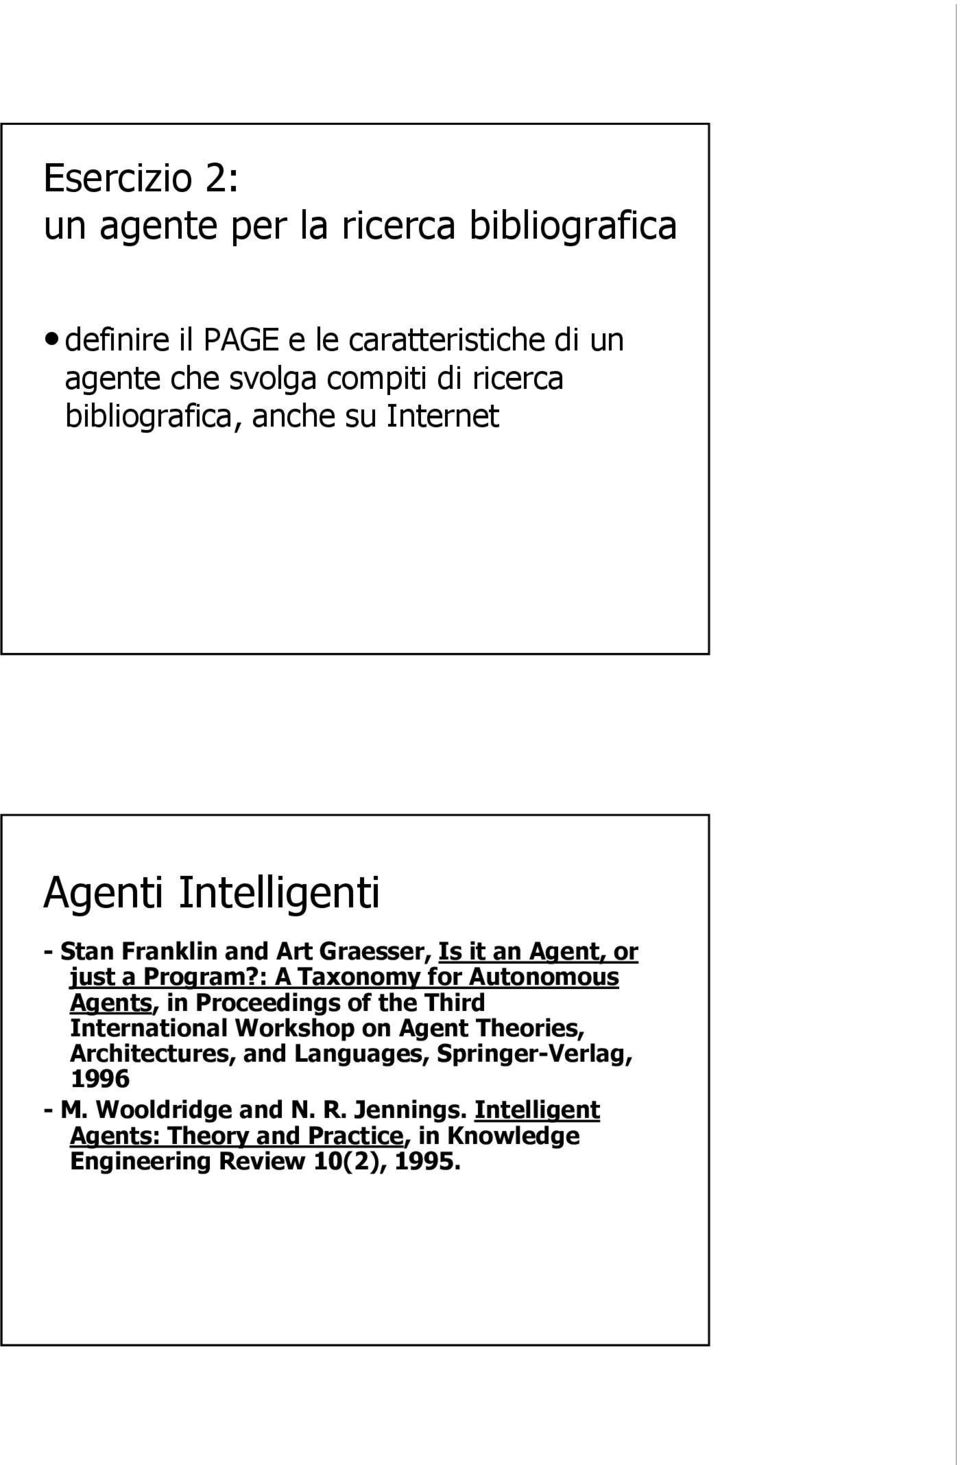 : A Taxonomy for Autonomous Agents, in Proceedings of the Third International Workshop on Agent Theories, Architectures, and